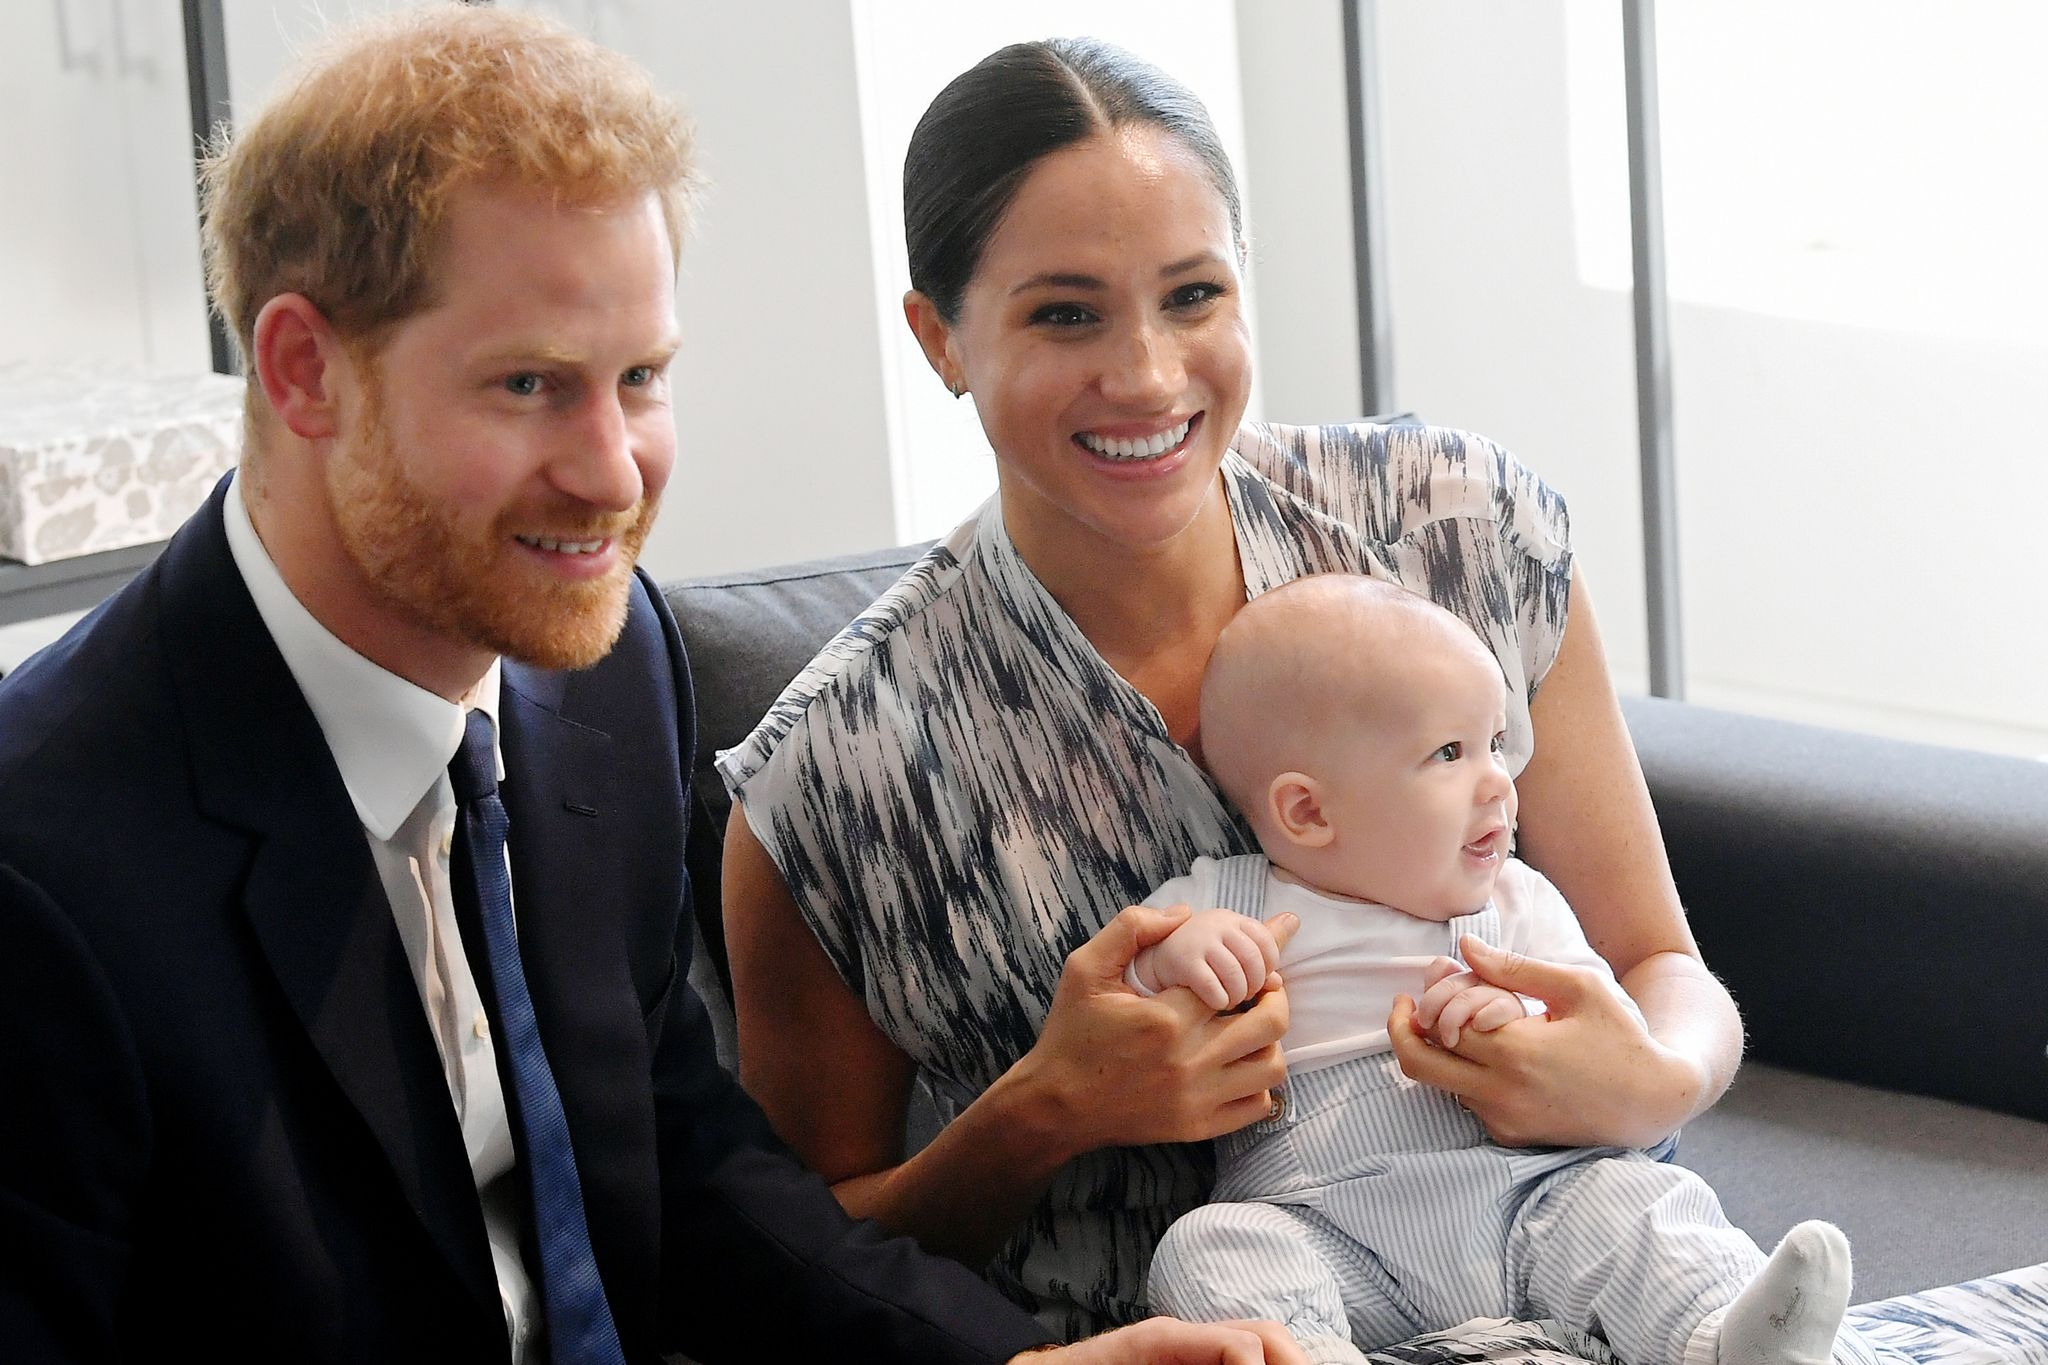 Prince Harry Meghan Markle, and their son Archie Mountbatten-Windsor during their royal tour of South Africa on September 25, 2019 in Cape Town, South Africa | Photo: Getty Images